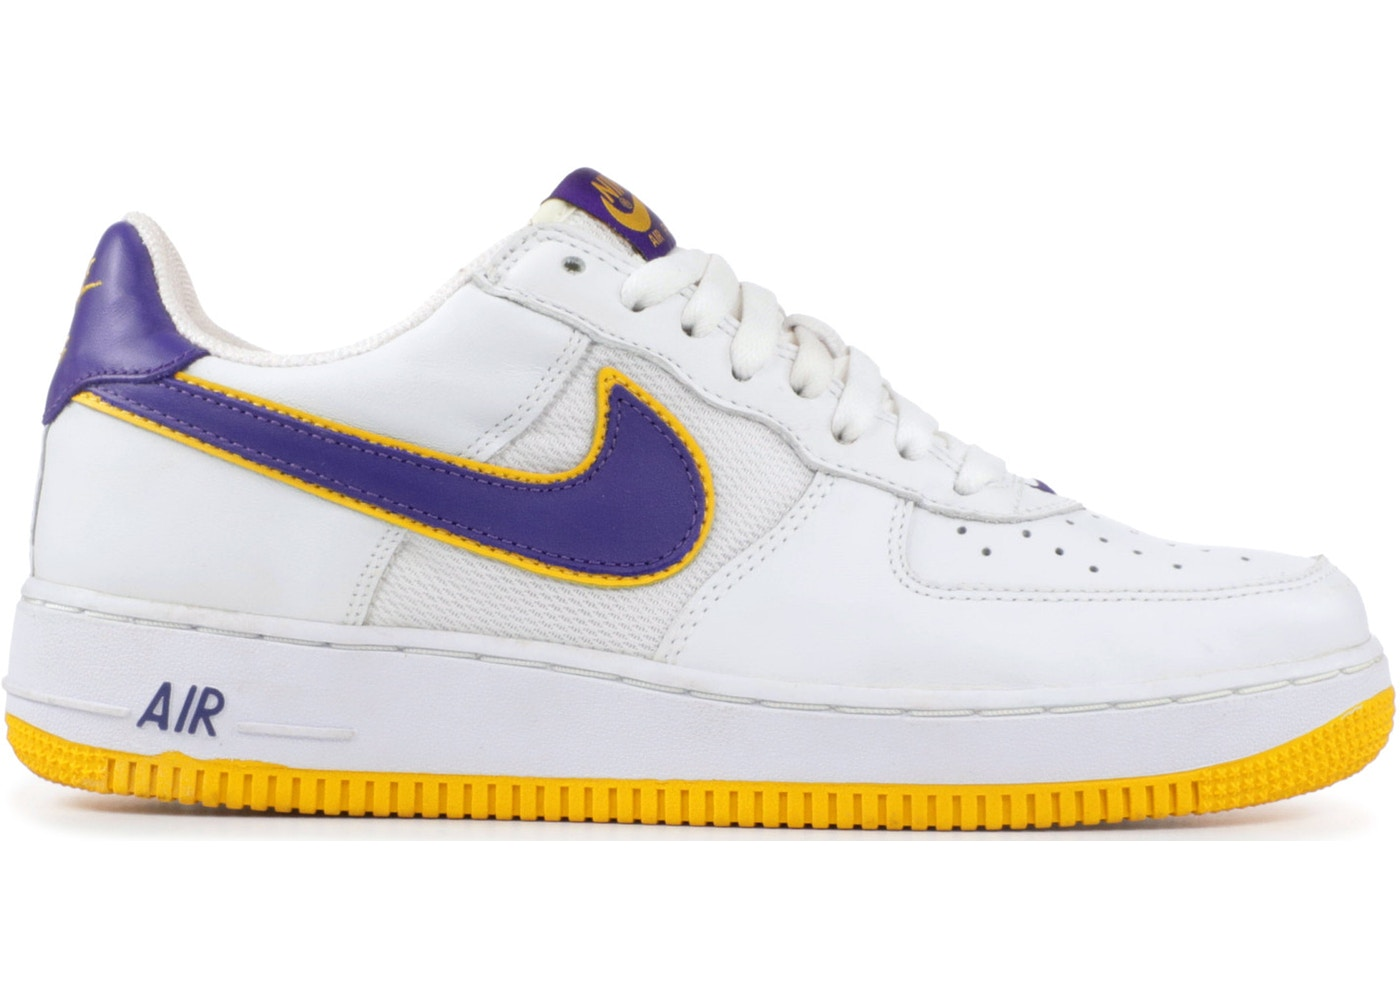 newest 1e86f 63c0d Sell. or Ask. Size --. View All Bids. Air Force 1 Low White Grape Ice Varsity  Maize